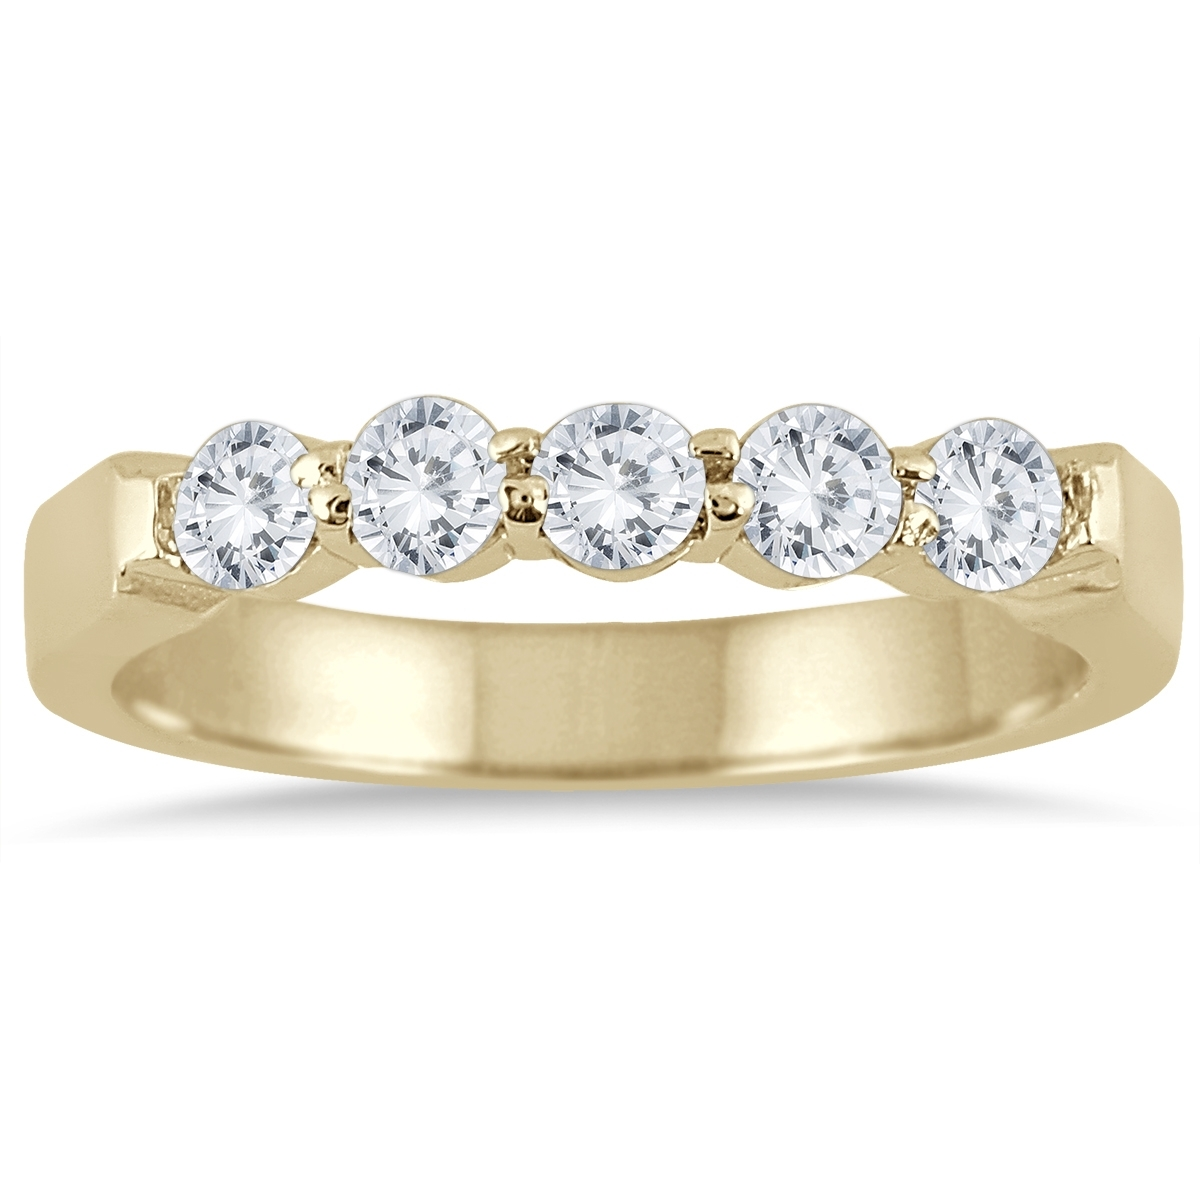 1 Carat Tw Five Stone Diamond Wedding Band In 10K Yellow Gold Intended For Most Up To Date Diamond Five Stone Bands In 10K Two Tone Gold (Gallery 11 of 15)